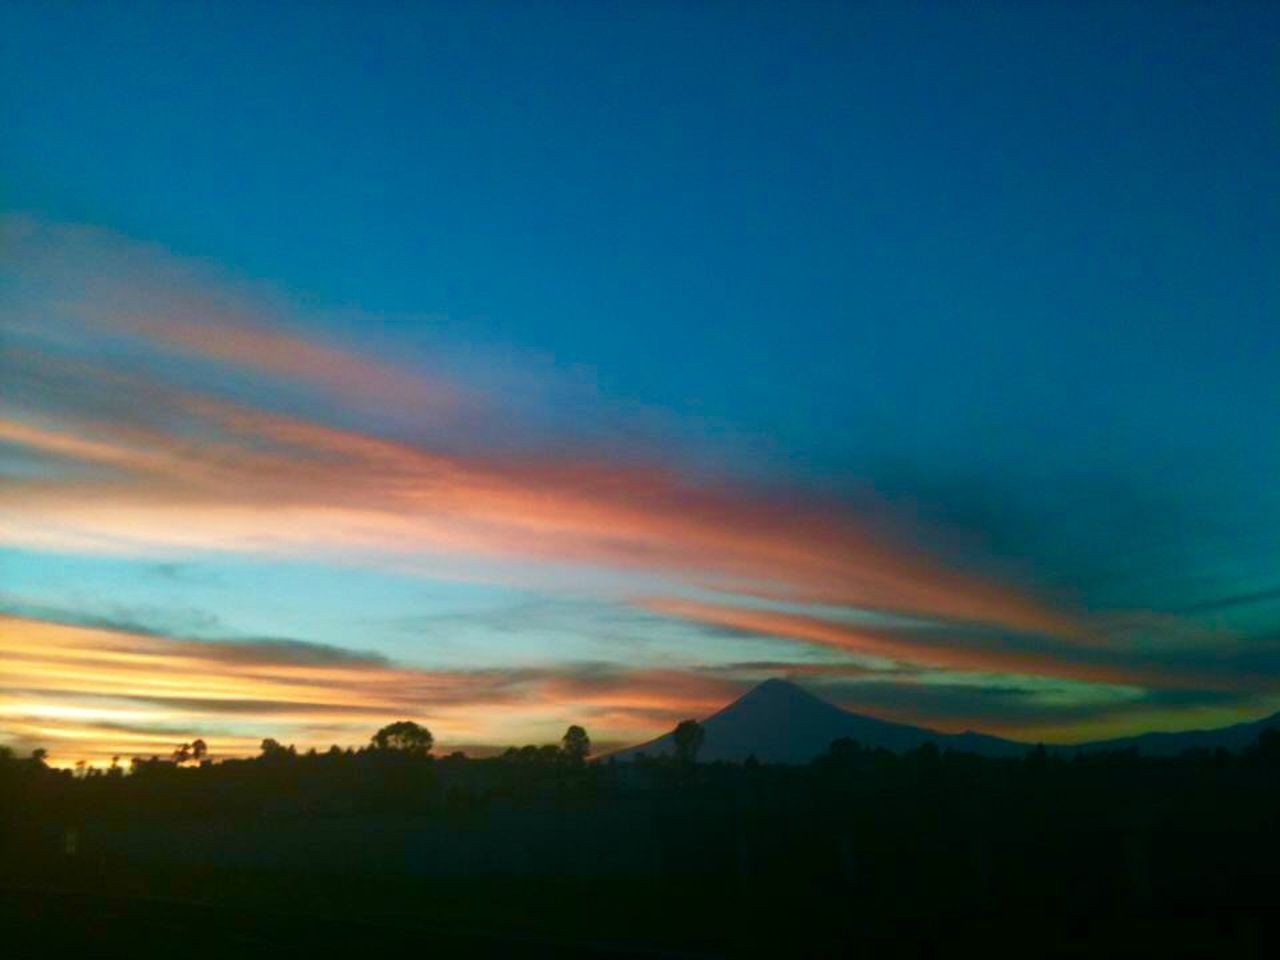 Disfrutando el atardecer Volcán Popocatépetl !! Hanging Out Taking Photos Enjoying Life Relaxing Connected With Nature From My Point Of View Sunset Clouds And Sky Volcano Landscape